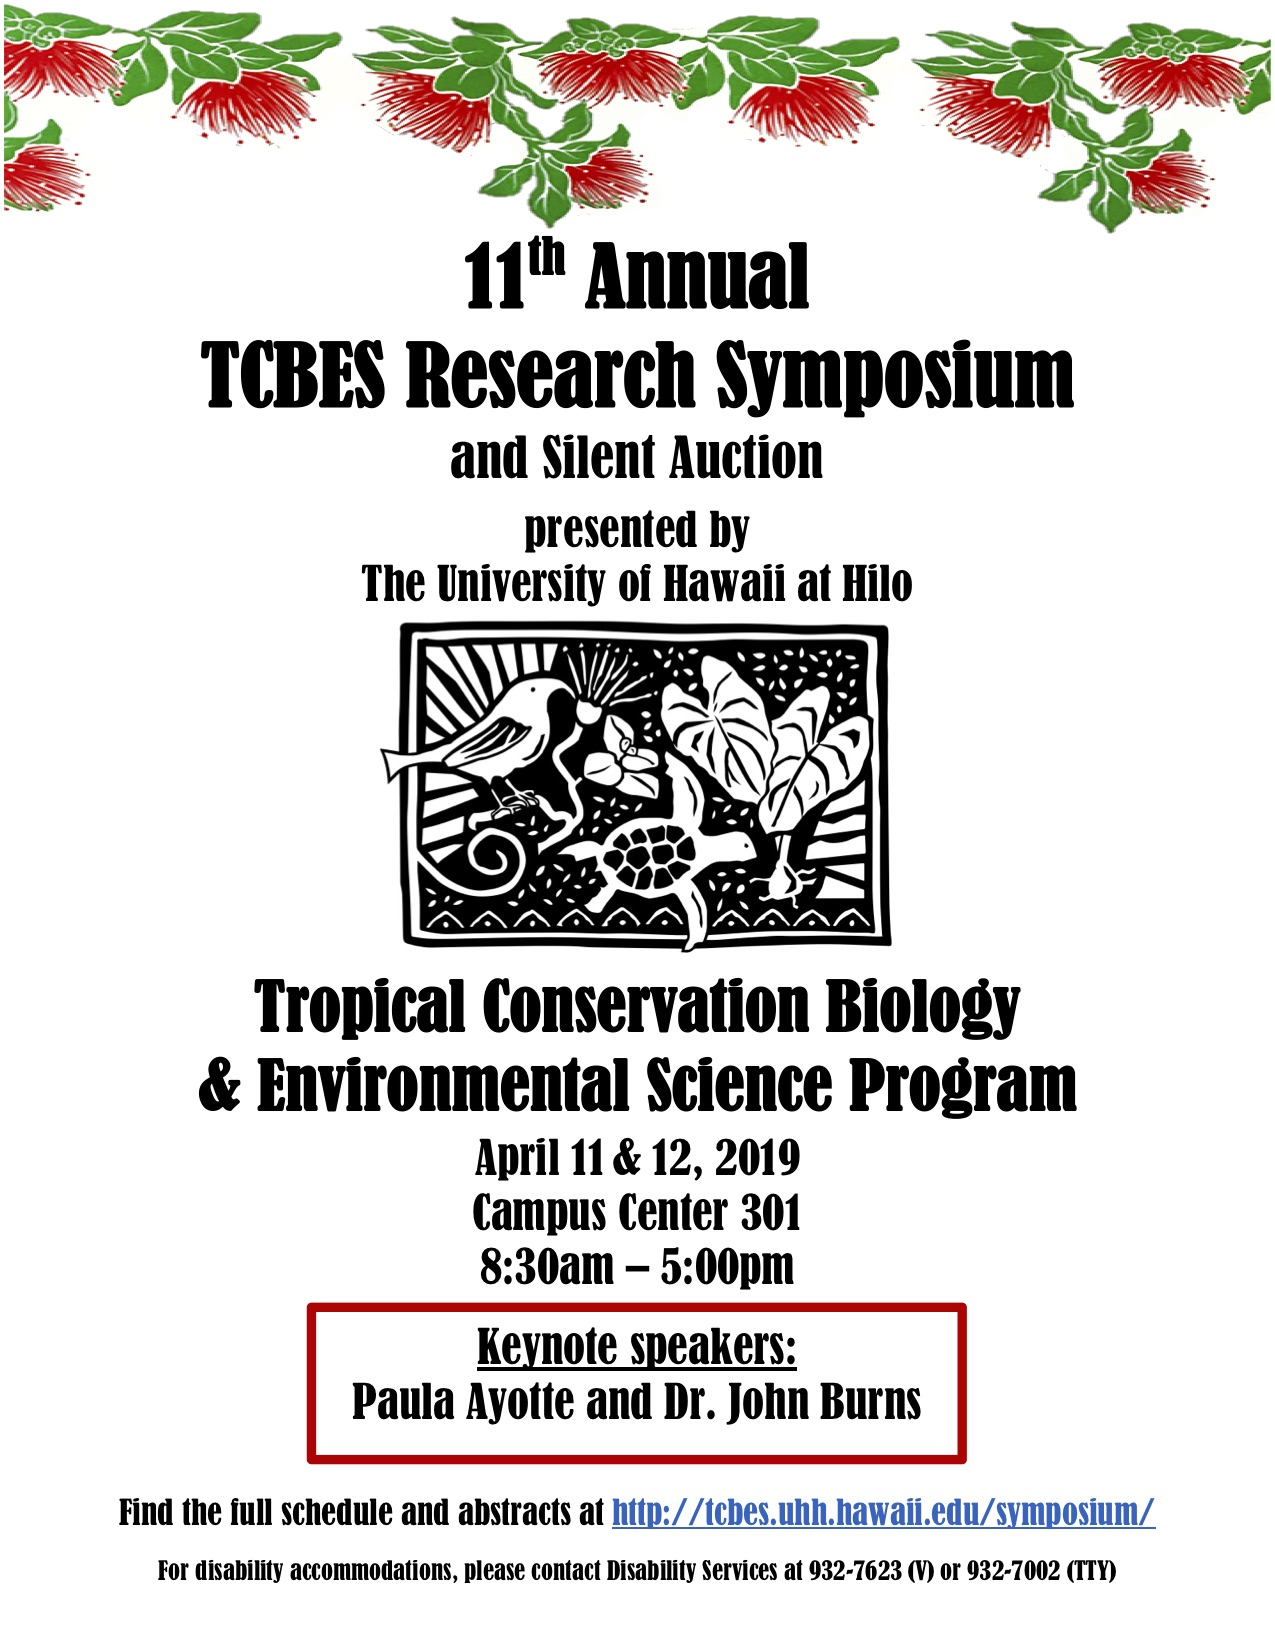 11th Annual TCBES Research Symposium and Silent Auction presented by the University of Hawaiʻi at Hilo Tropical Conservation Biology and Environmental Science program April 11-12, 2019 in Campus Center 301 from 8:30am - 5:00pm. Keynote speakers are Paula Ayotte and Dr. John Burns. Find the full schedule and abstracts at http://tcbes.uhh.hawaii.edu/symposium-program.